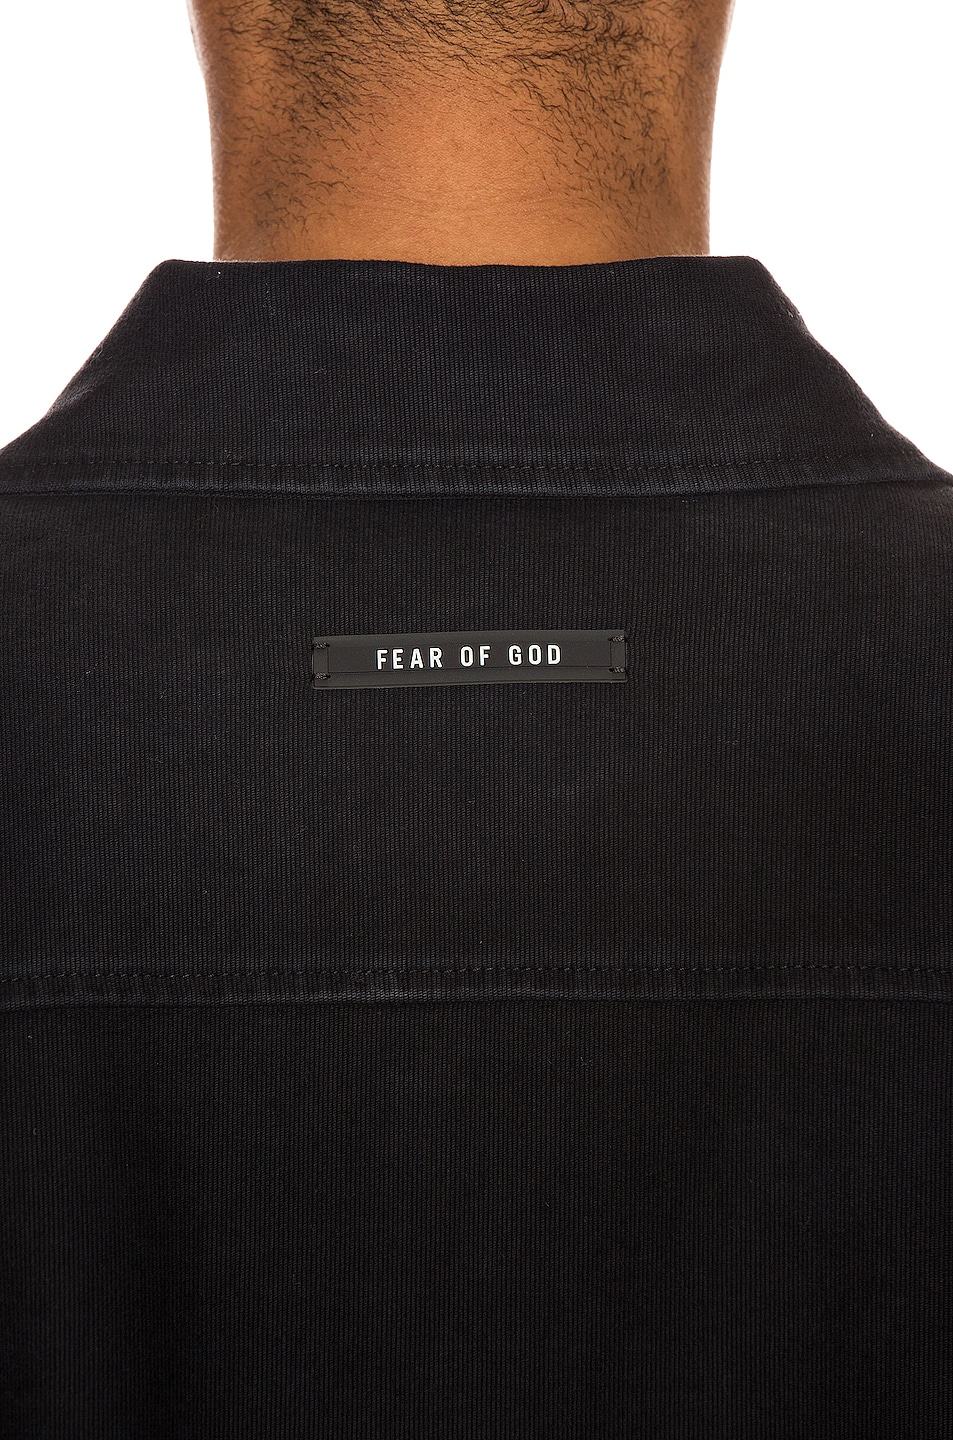 Image 7 of Fear of God Canvas Shirt Jacket in Black